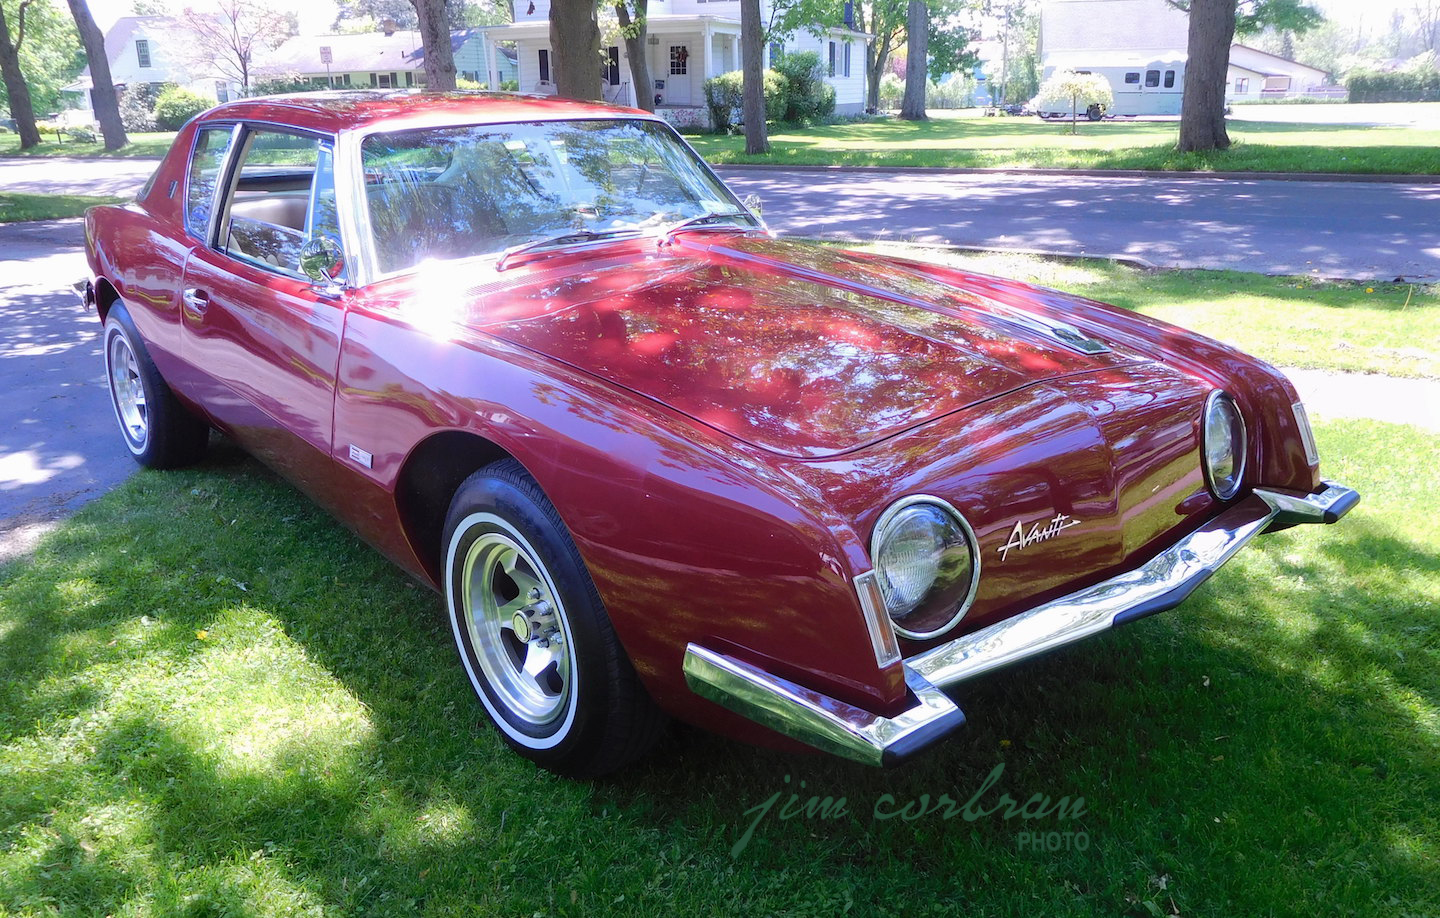 THE AVANTI BUG BITES AGAIN  — 1963 Studebaker Avanti